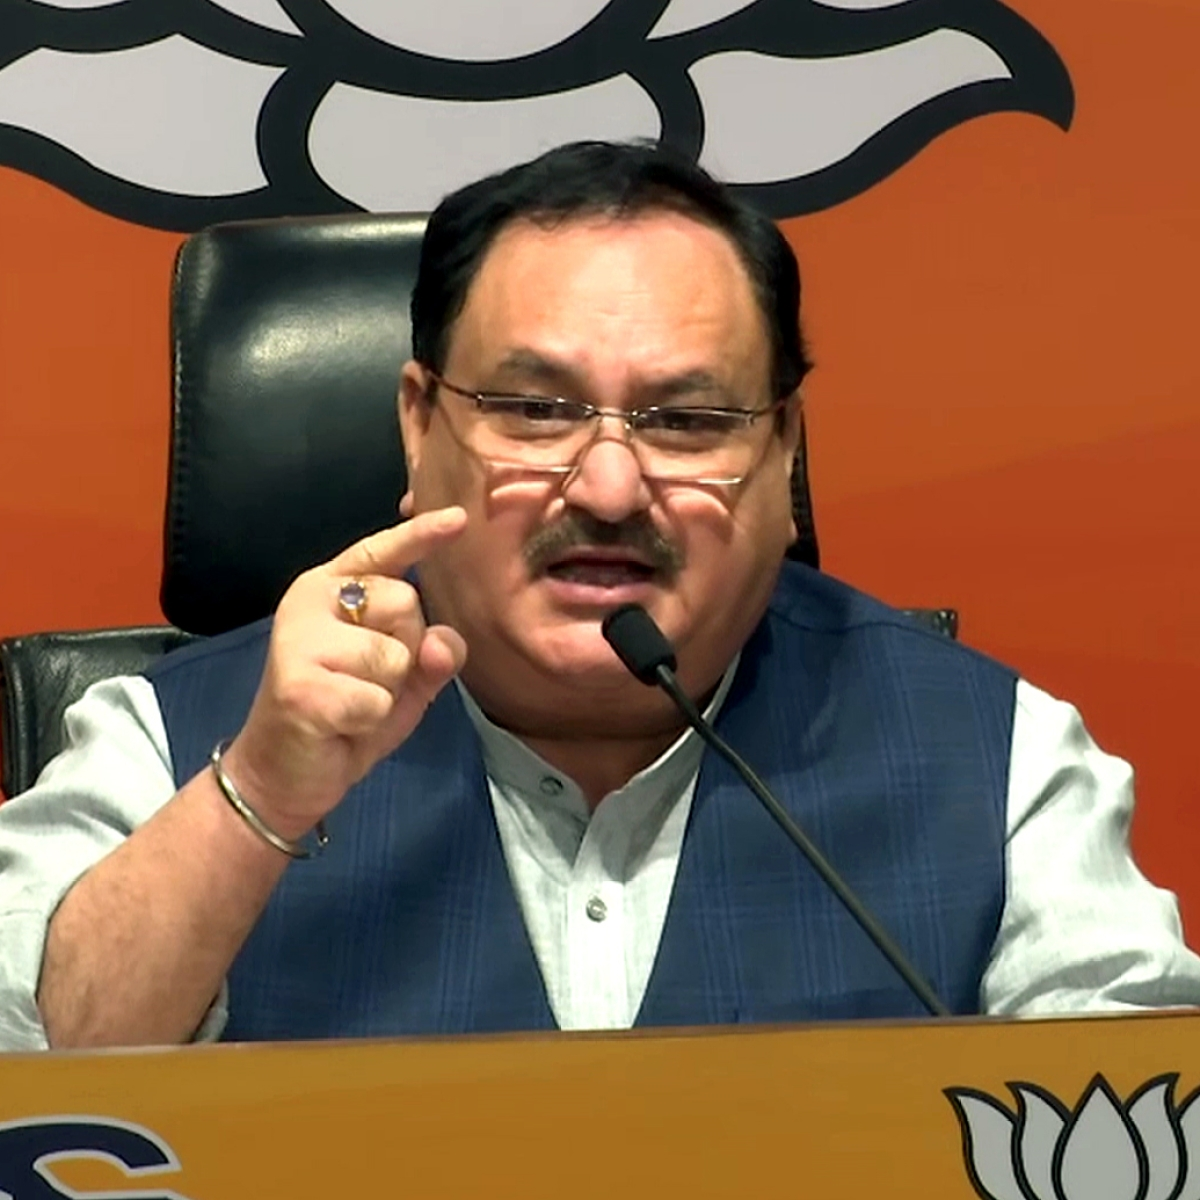 BJP chief JP Nadda to form his new team this week